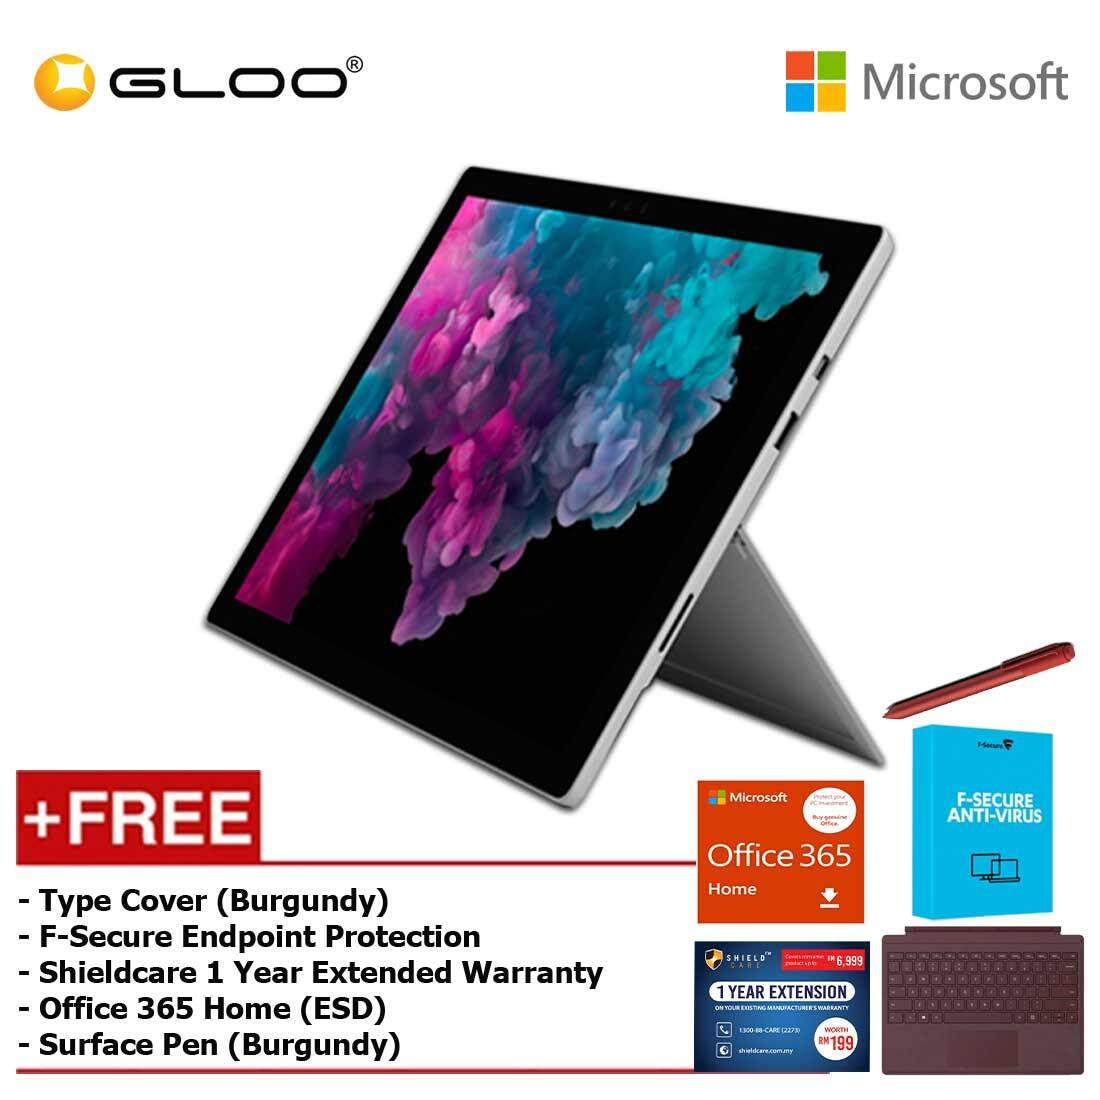 Microsoft Surface Pro 6 Core i5/8GB RAM - 256GB + Type Cover Burgundy + Office 365 Home + Pen Burgundy + Fsecure + Shieldcare 1 Year Extended Warranty